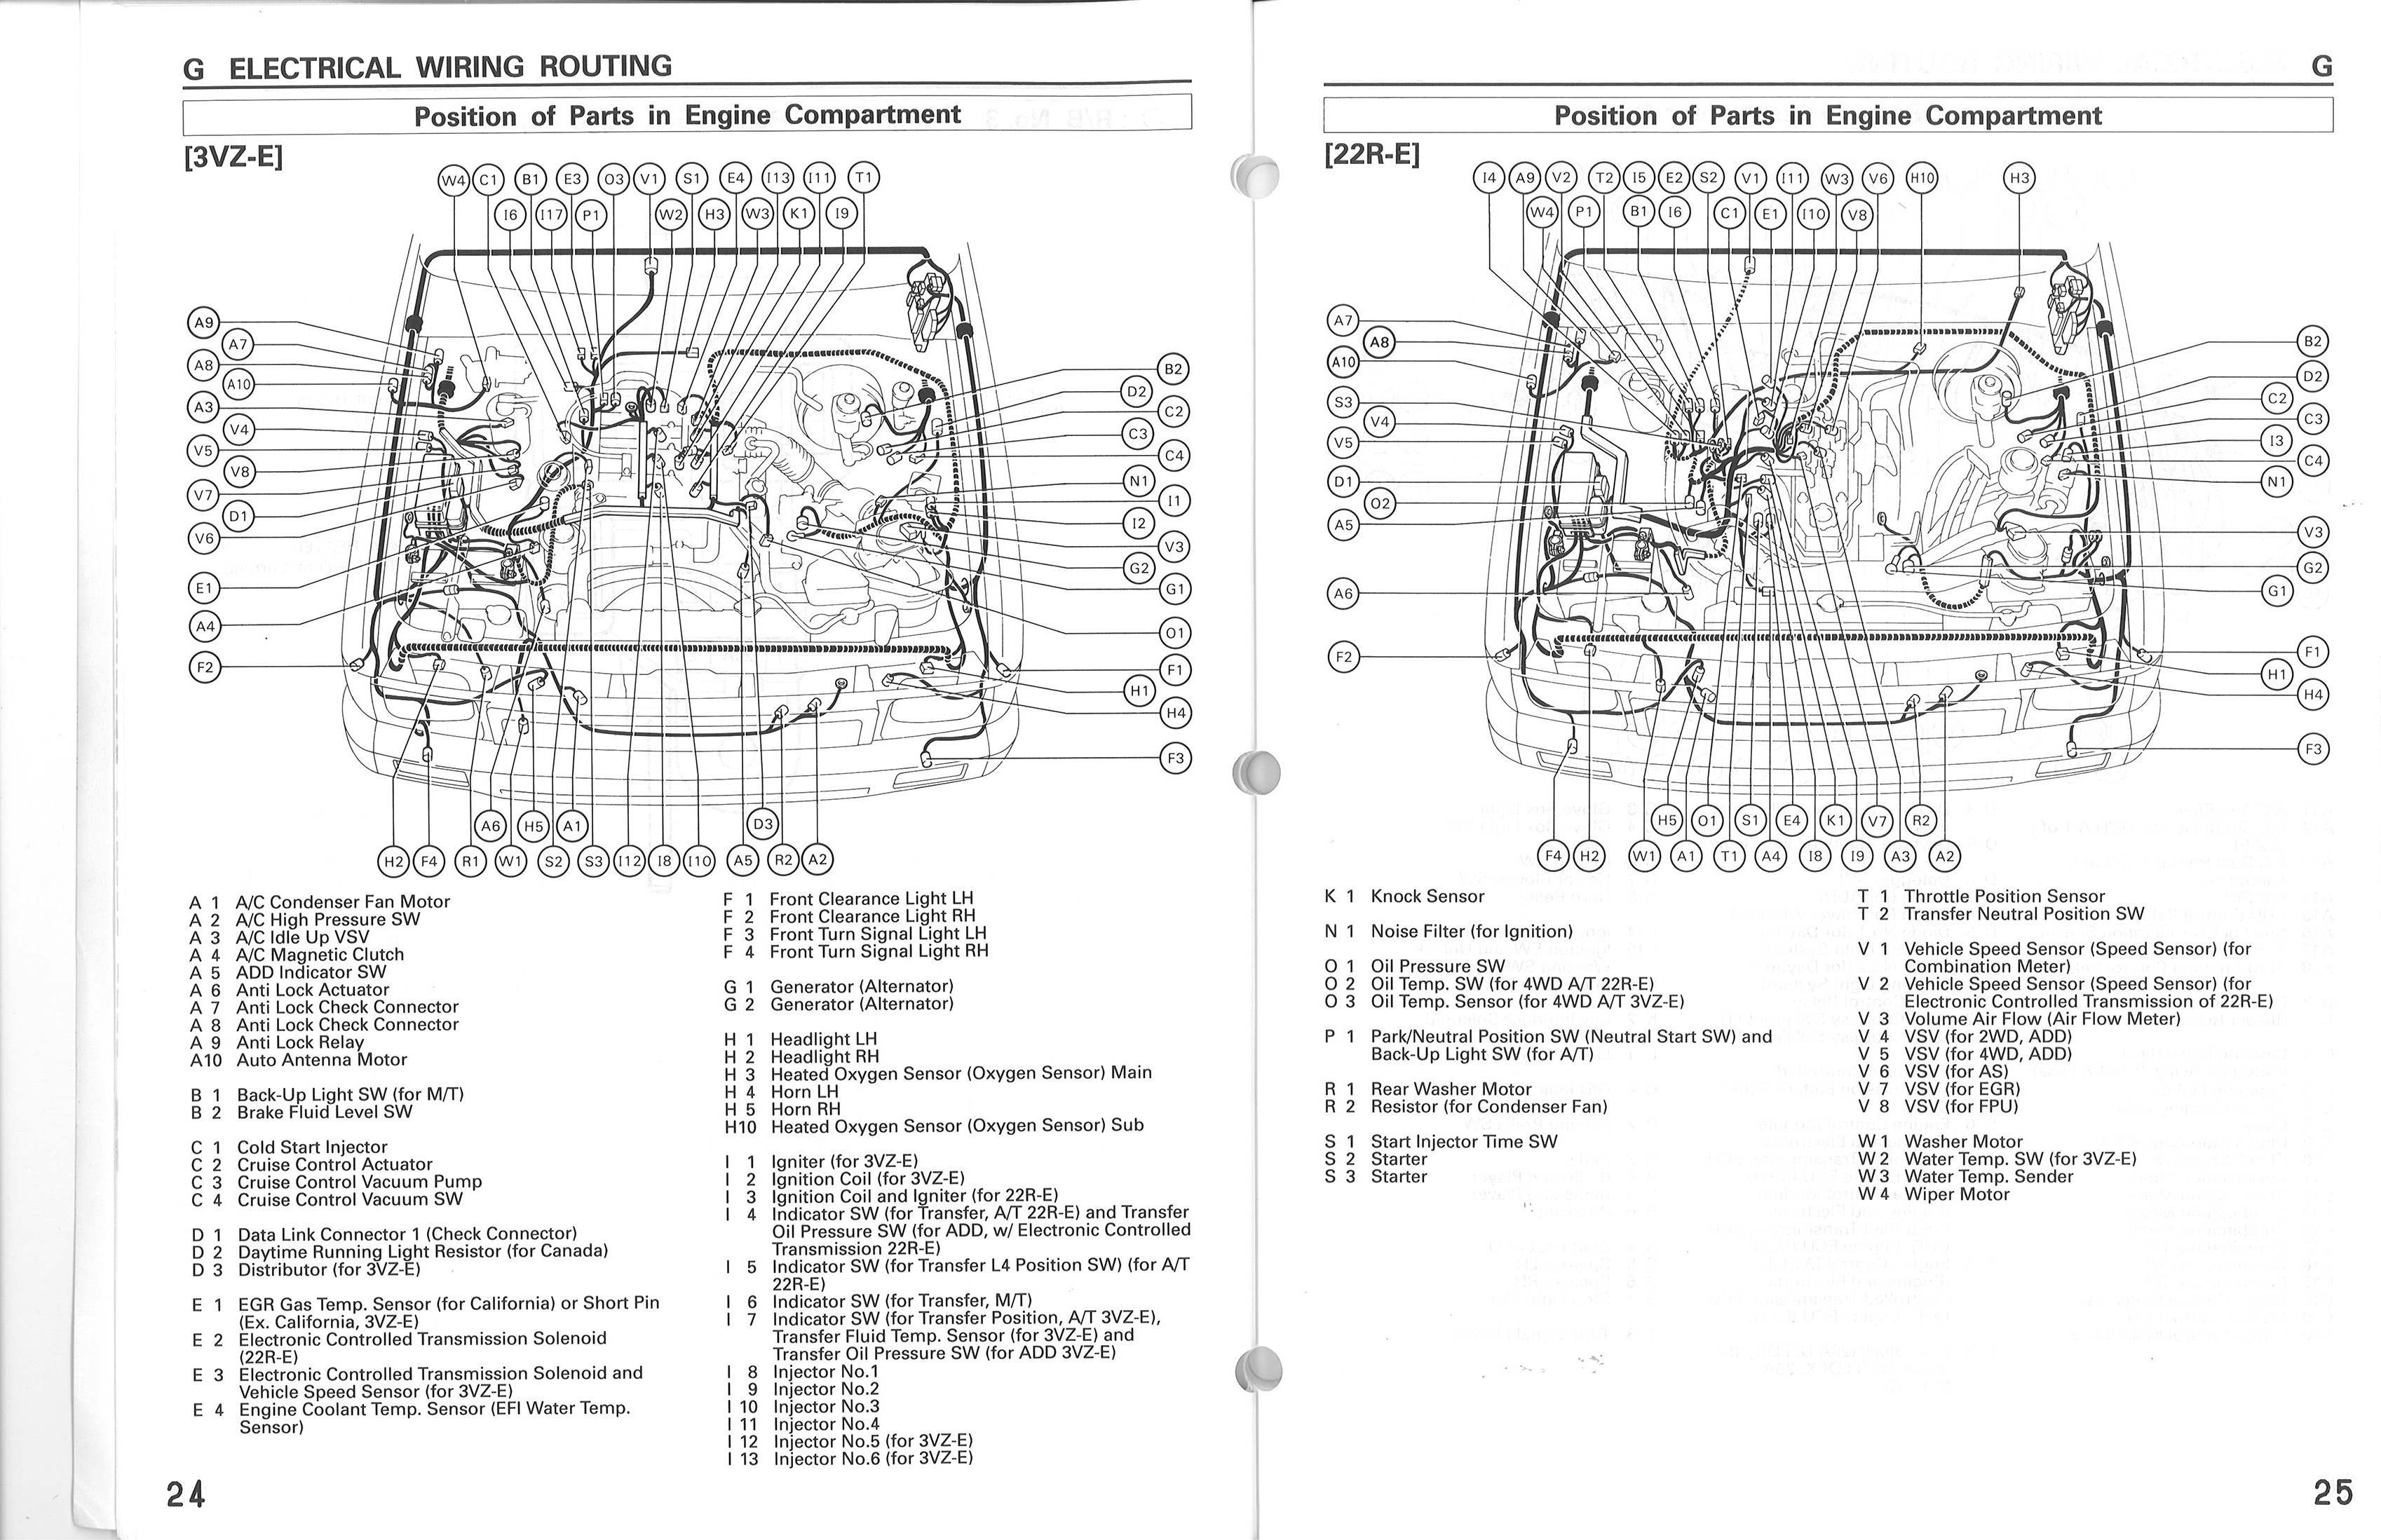 22re intake manifold diagram on 1991 toyota pickup 22re wiring 1991 Toyota Pickup Idle